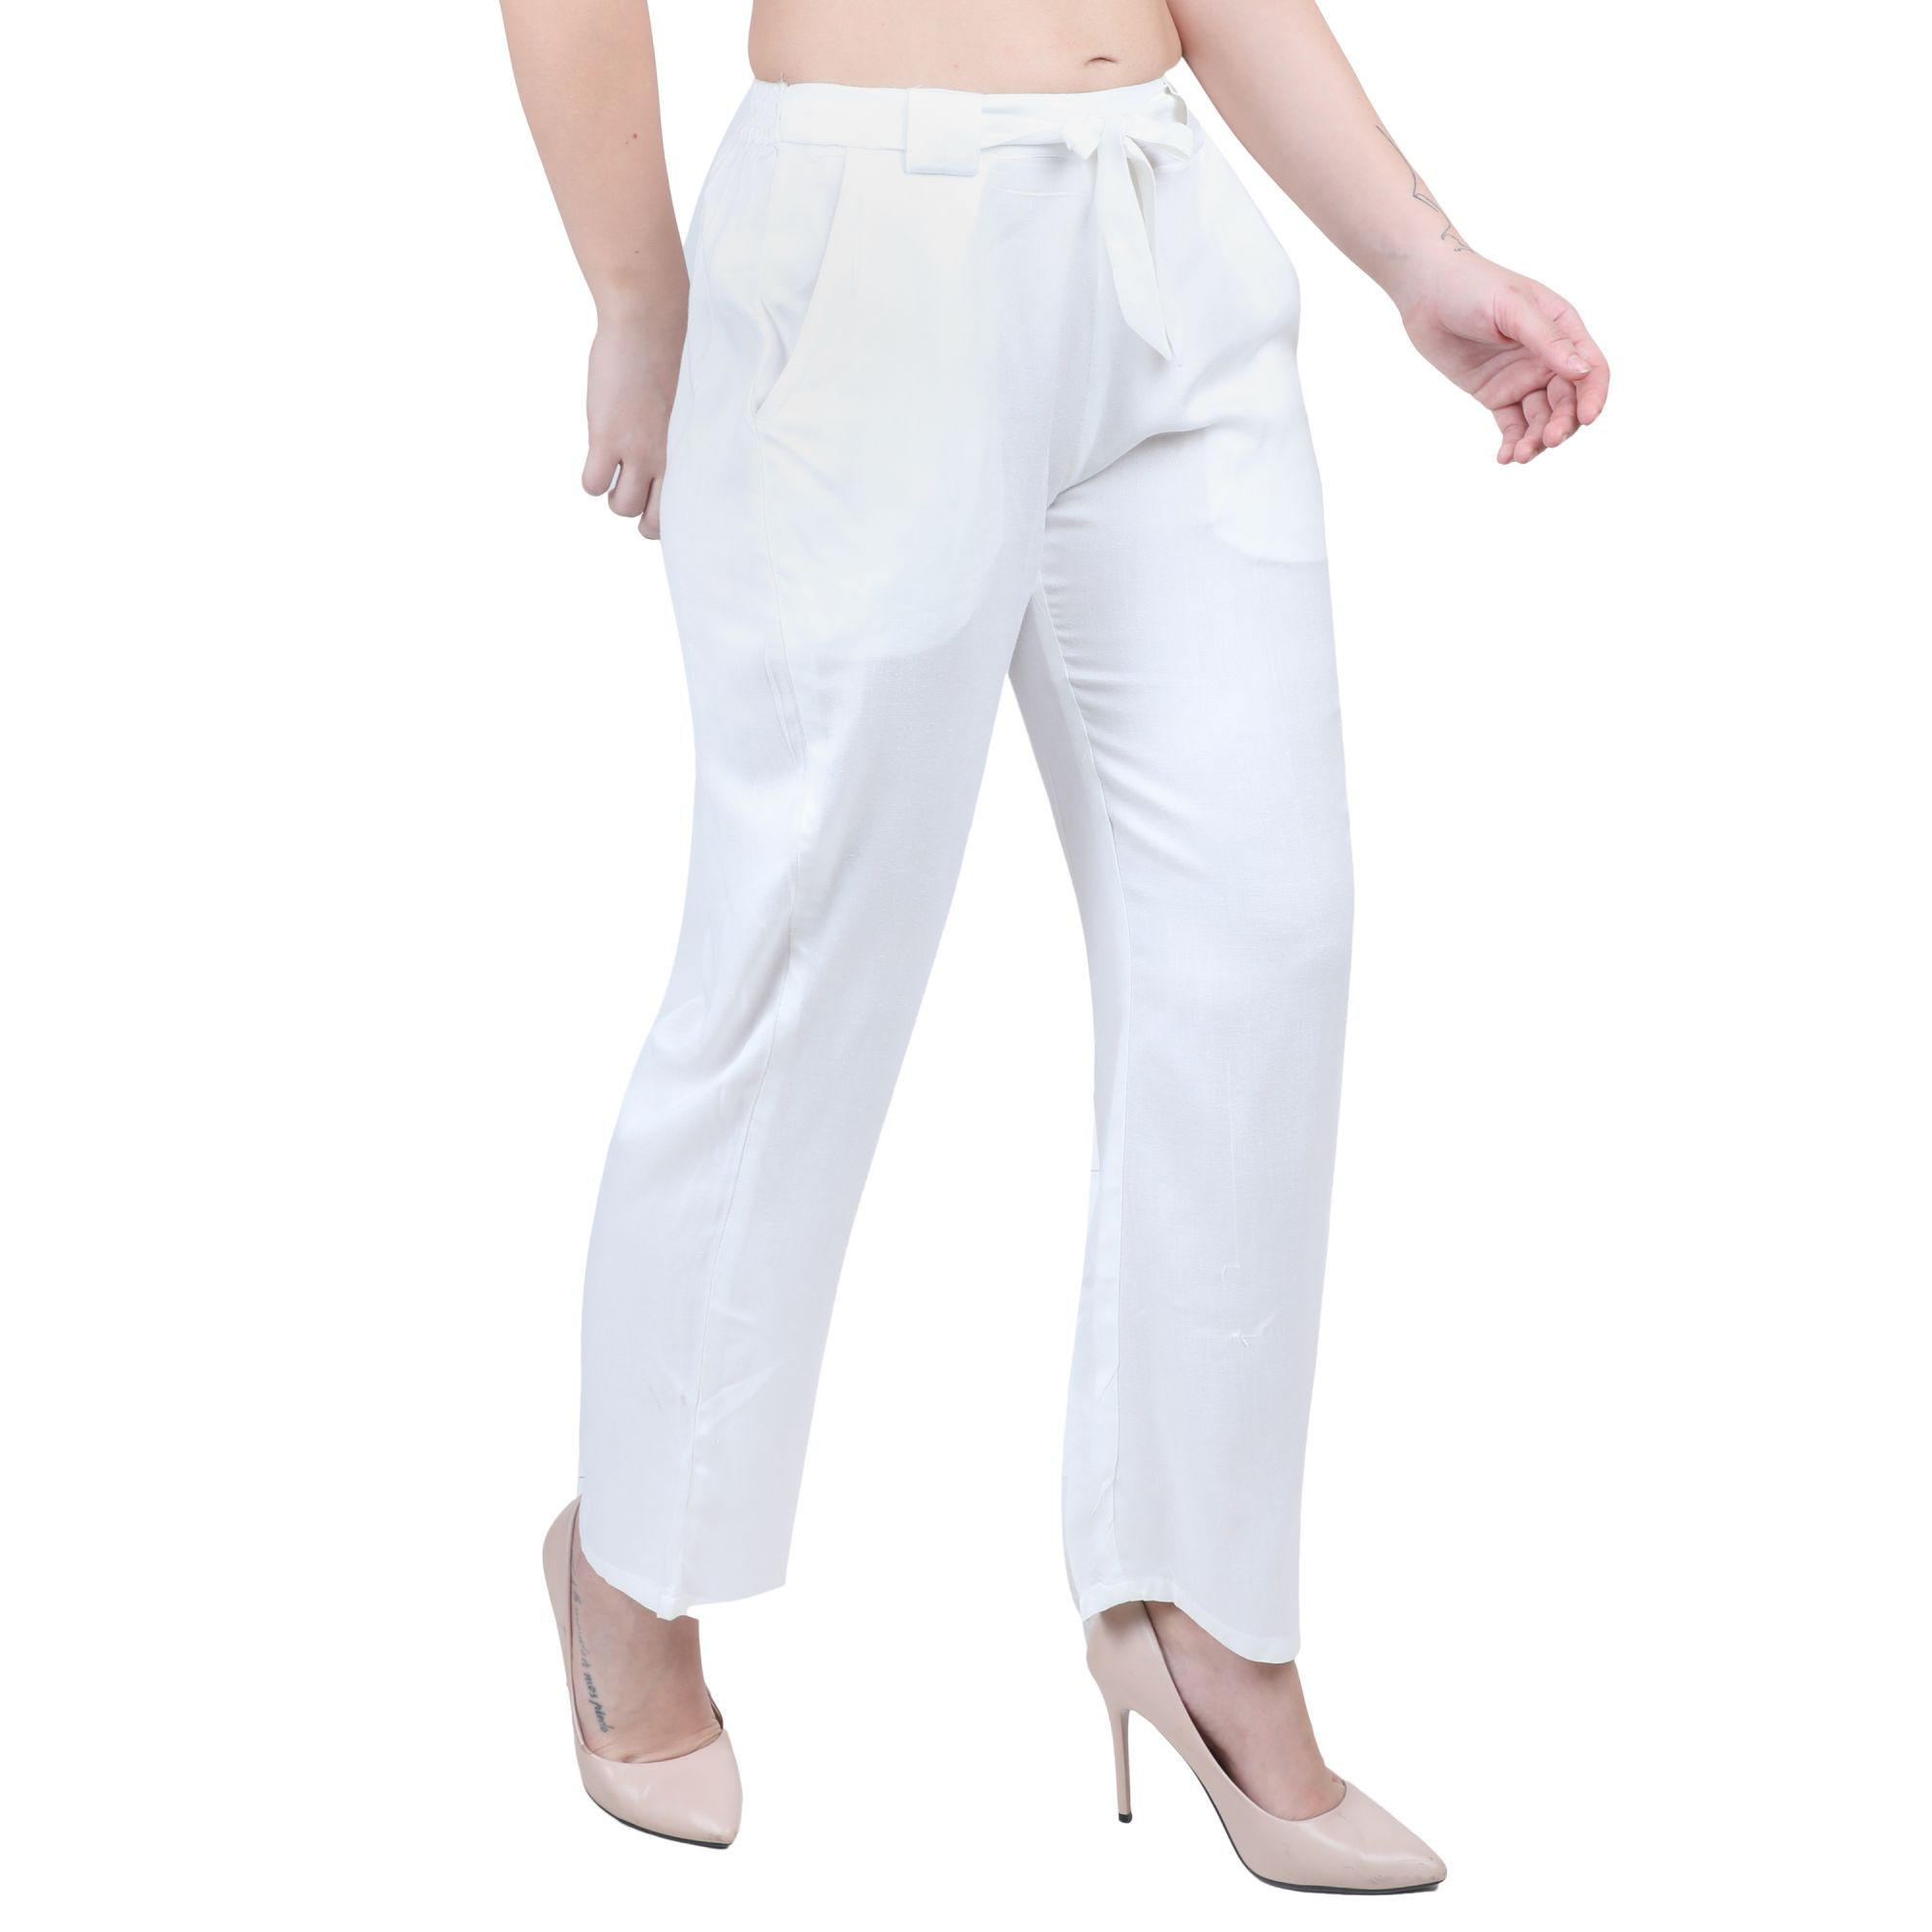 Western Fit Formal Trousers in White